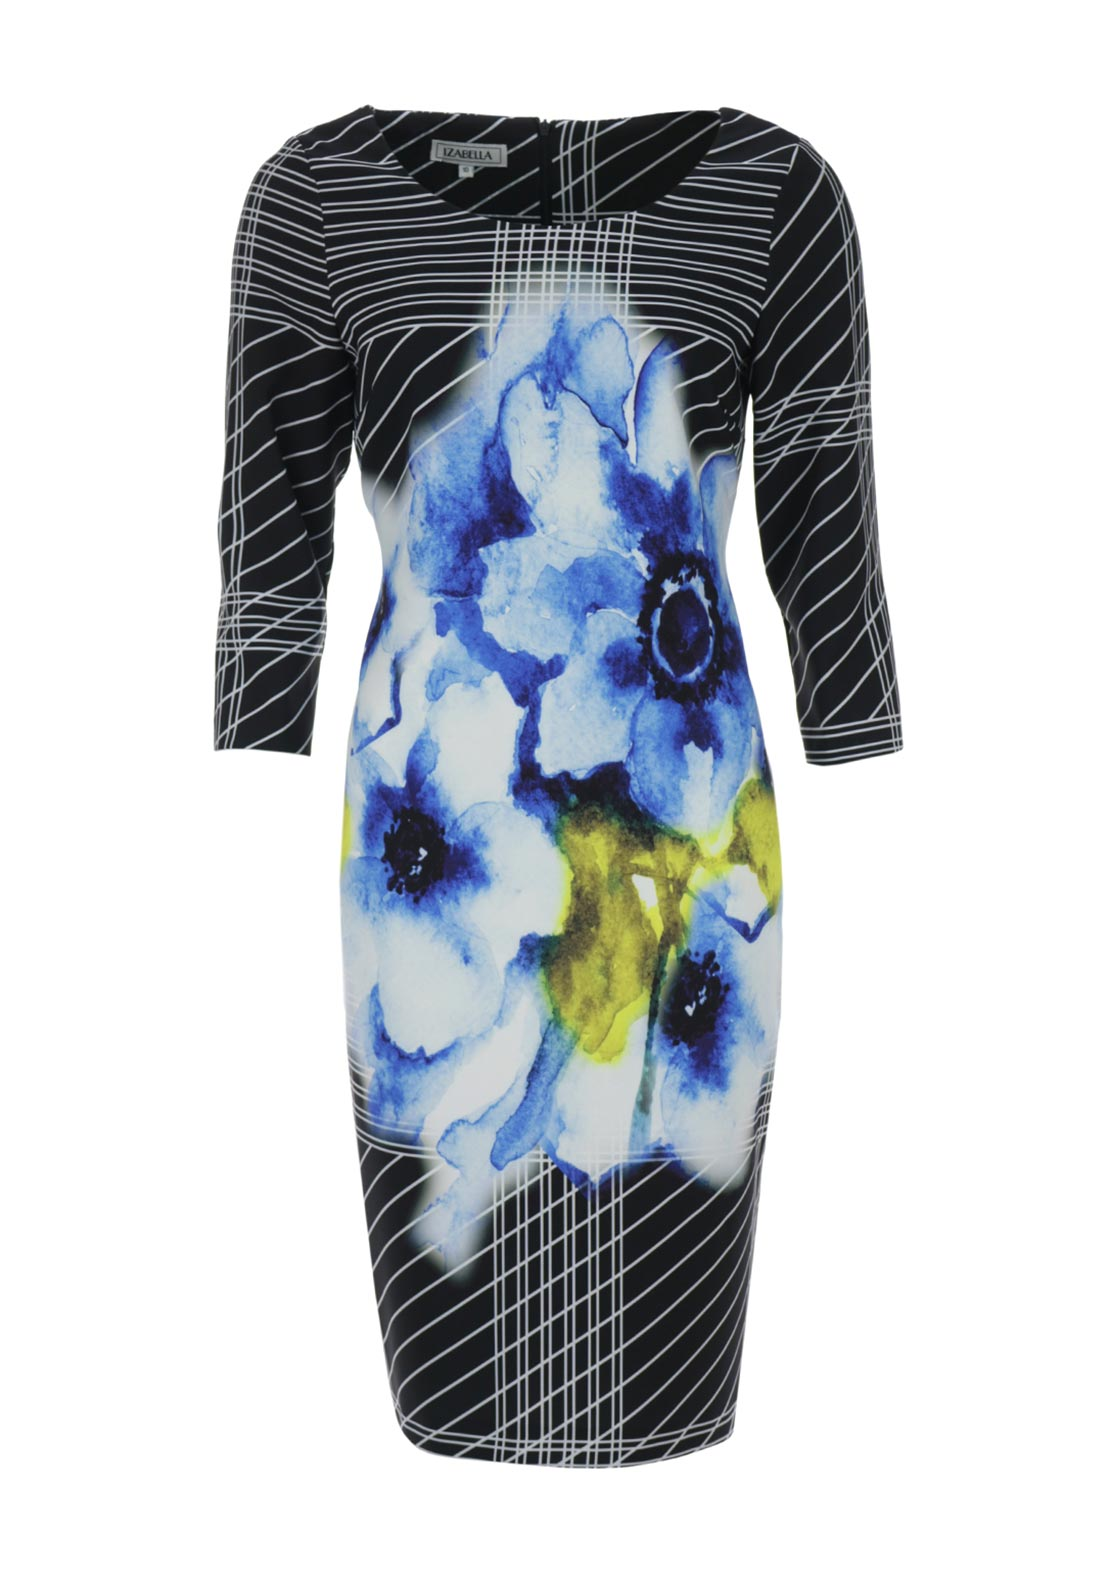 Izabella Abstract Print Pencil Dress, Multi-Coloured